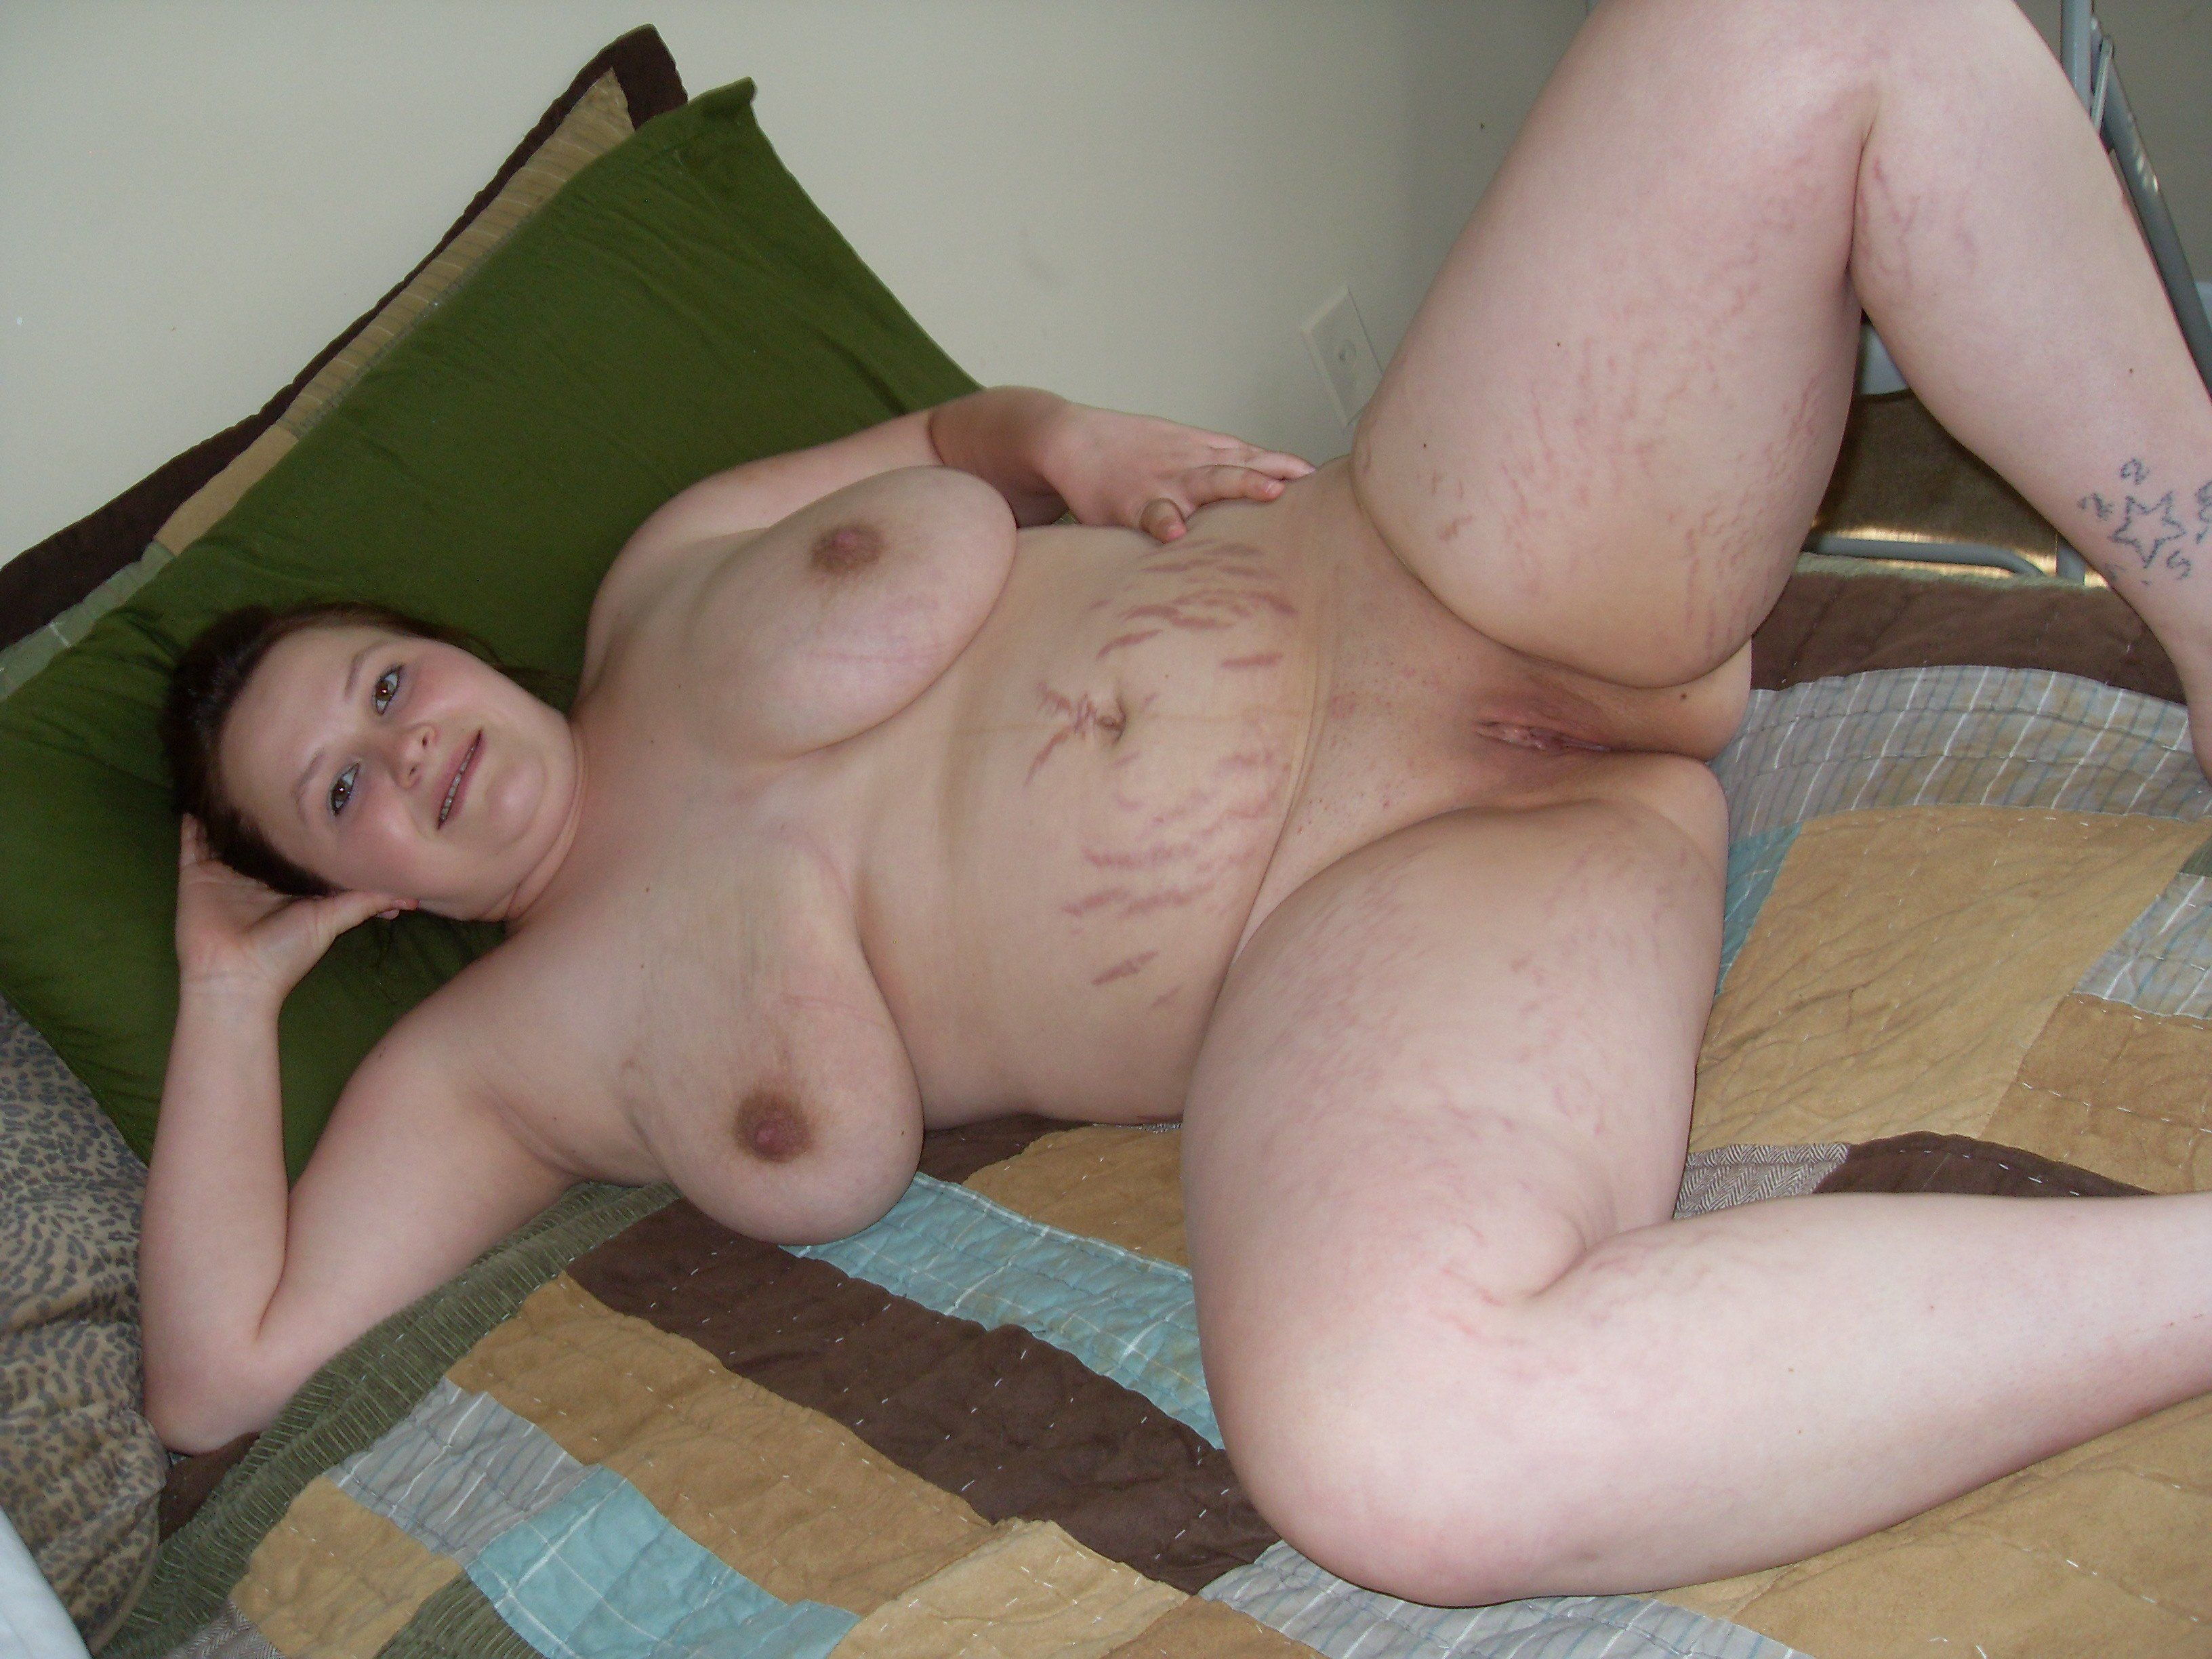 best of Porno pics women free Ugly